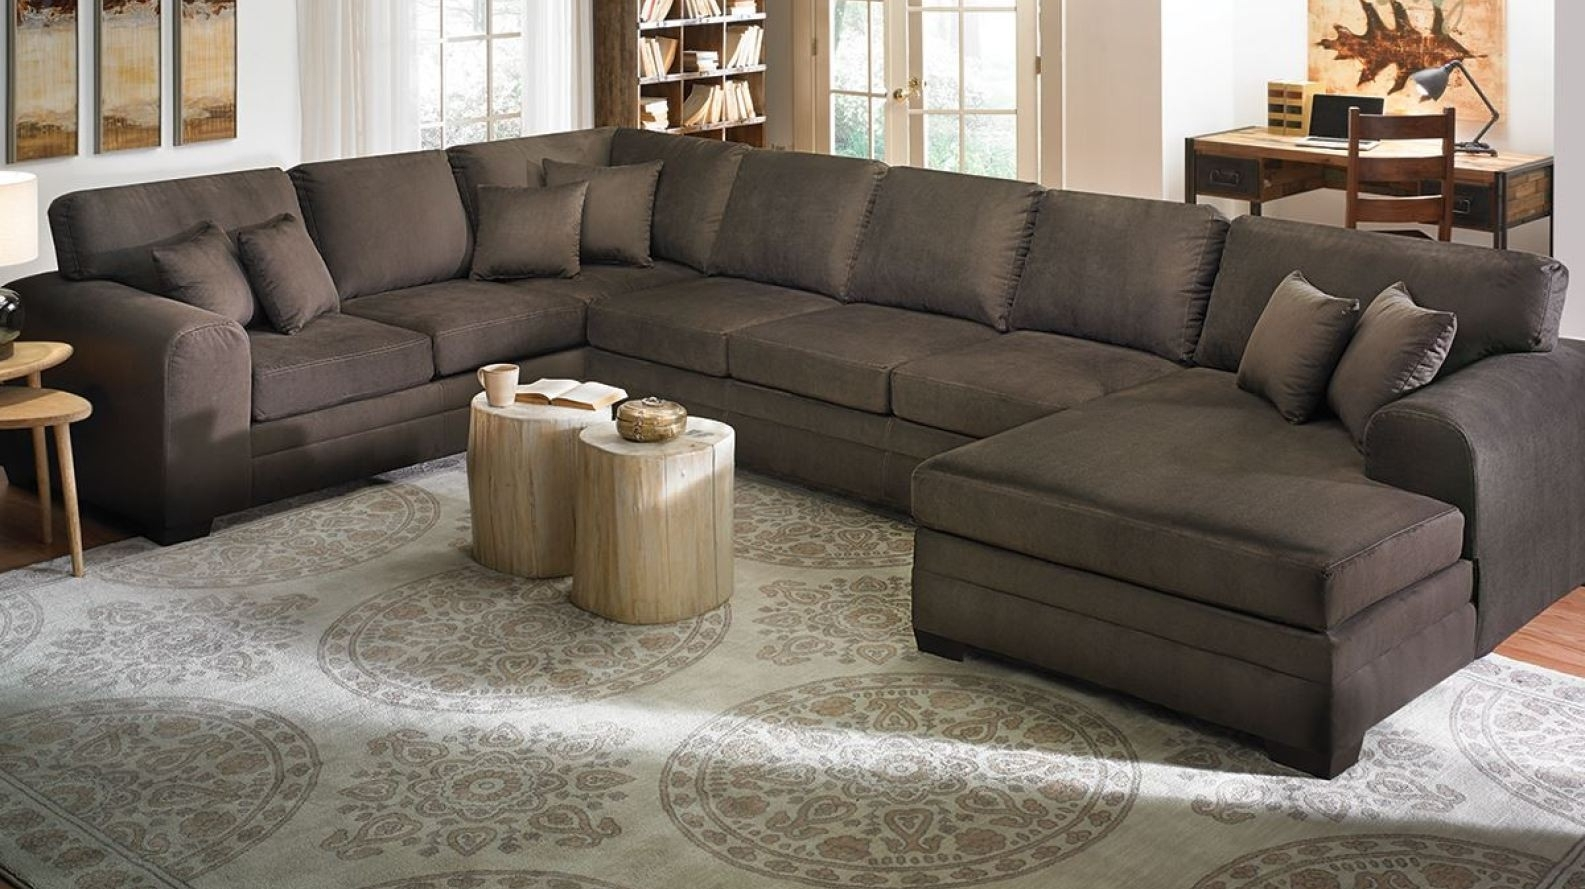 Sectional Sofa : Extra Large Sectional Sofas With Chaise New Pertaining To Long Chaise Sofas (View 6 of 10)